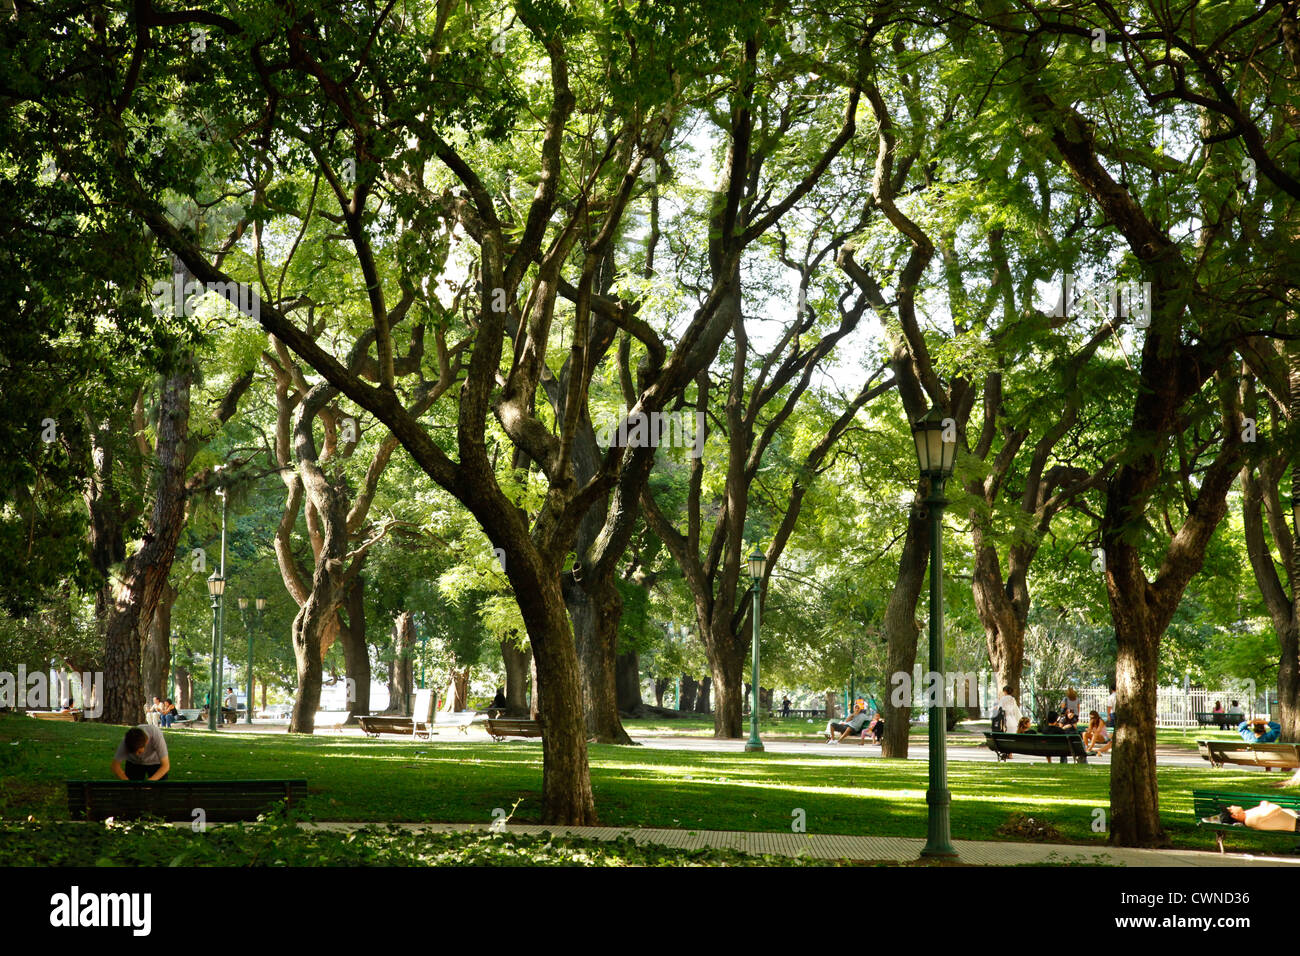 Trees at Plaza San Martin, Retiro, Buenos Aires, Argentina. Stock Photo